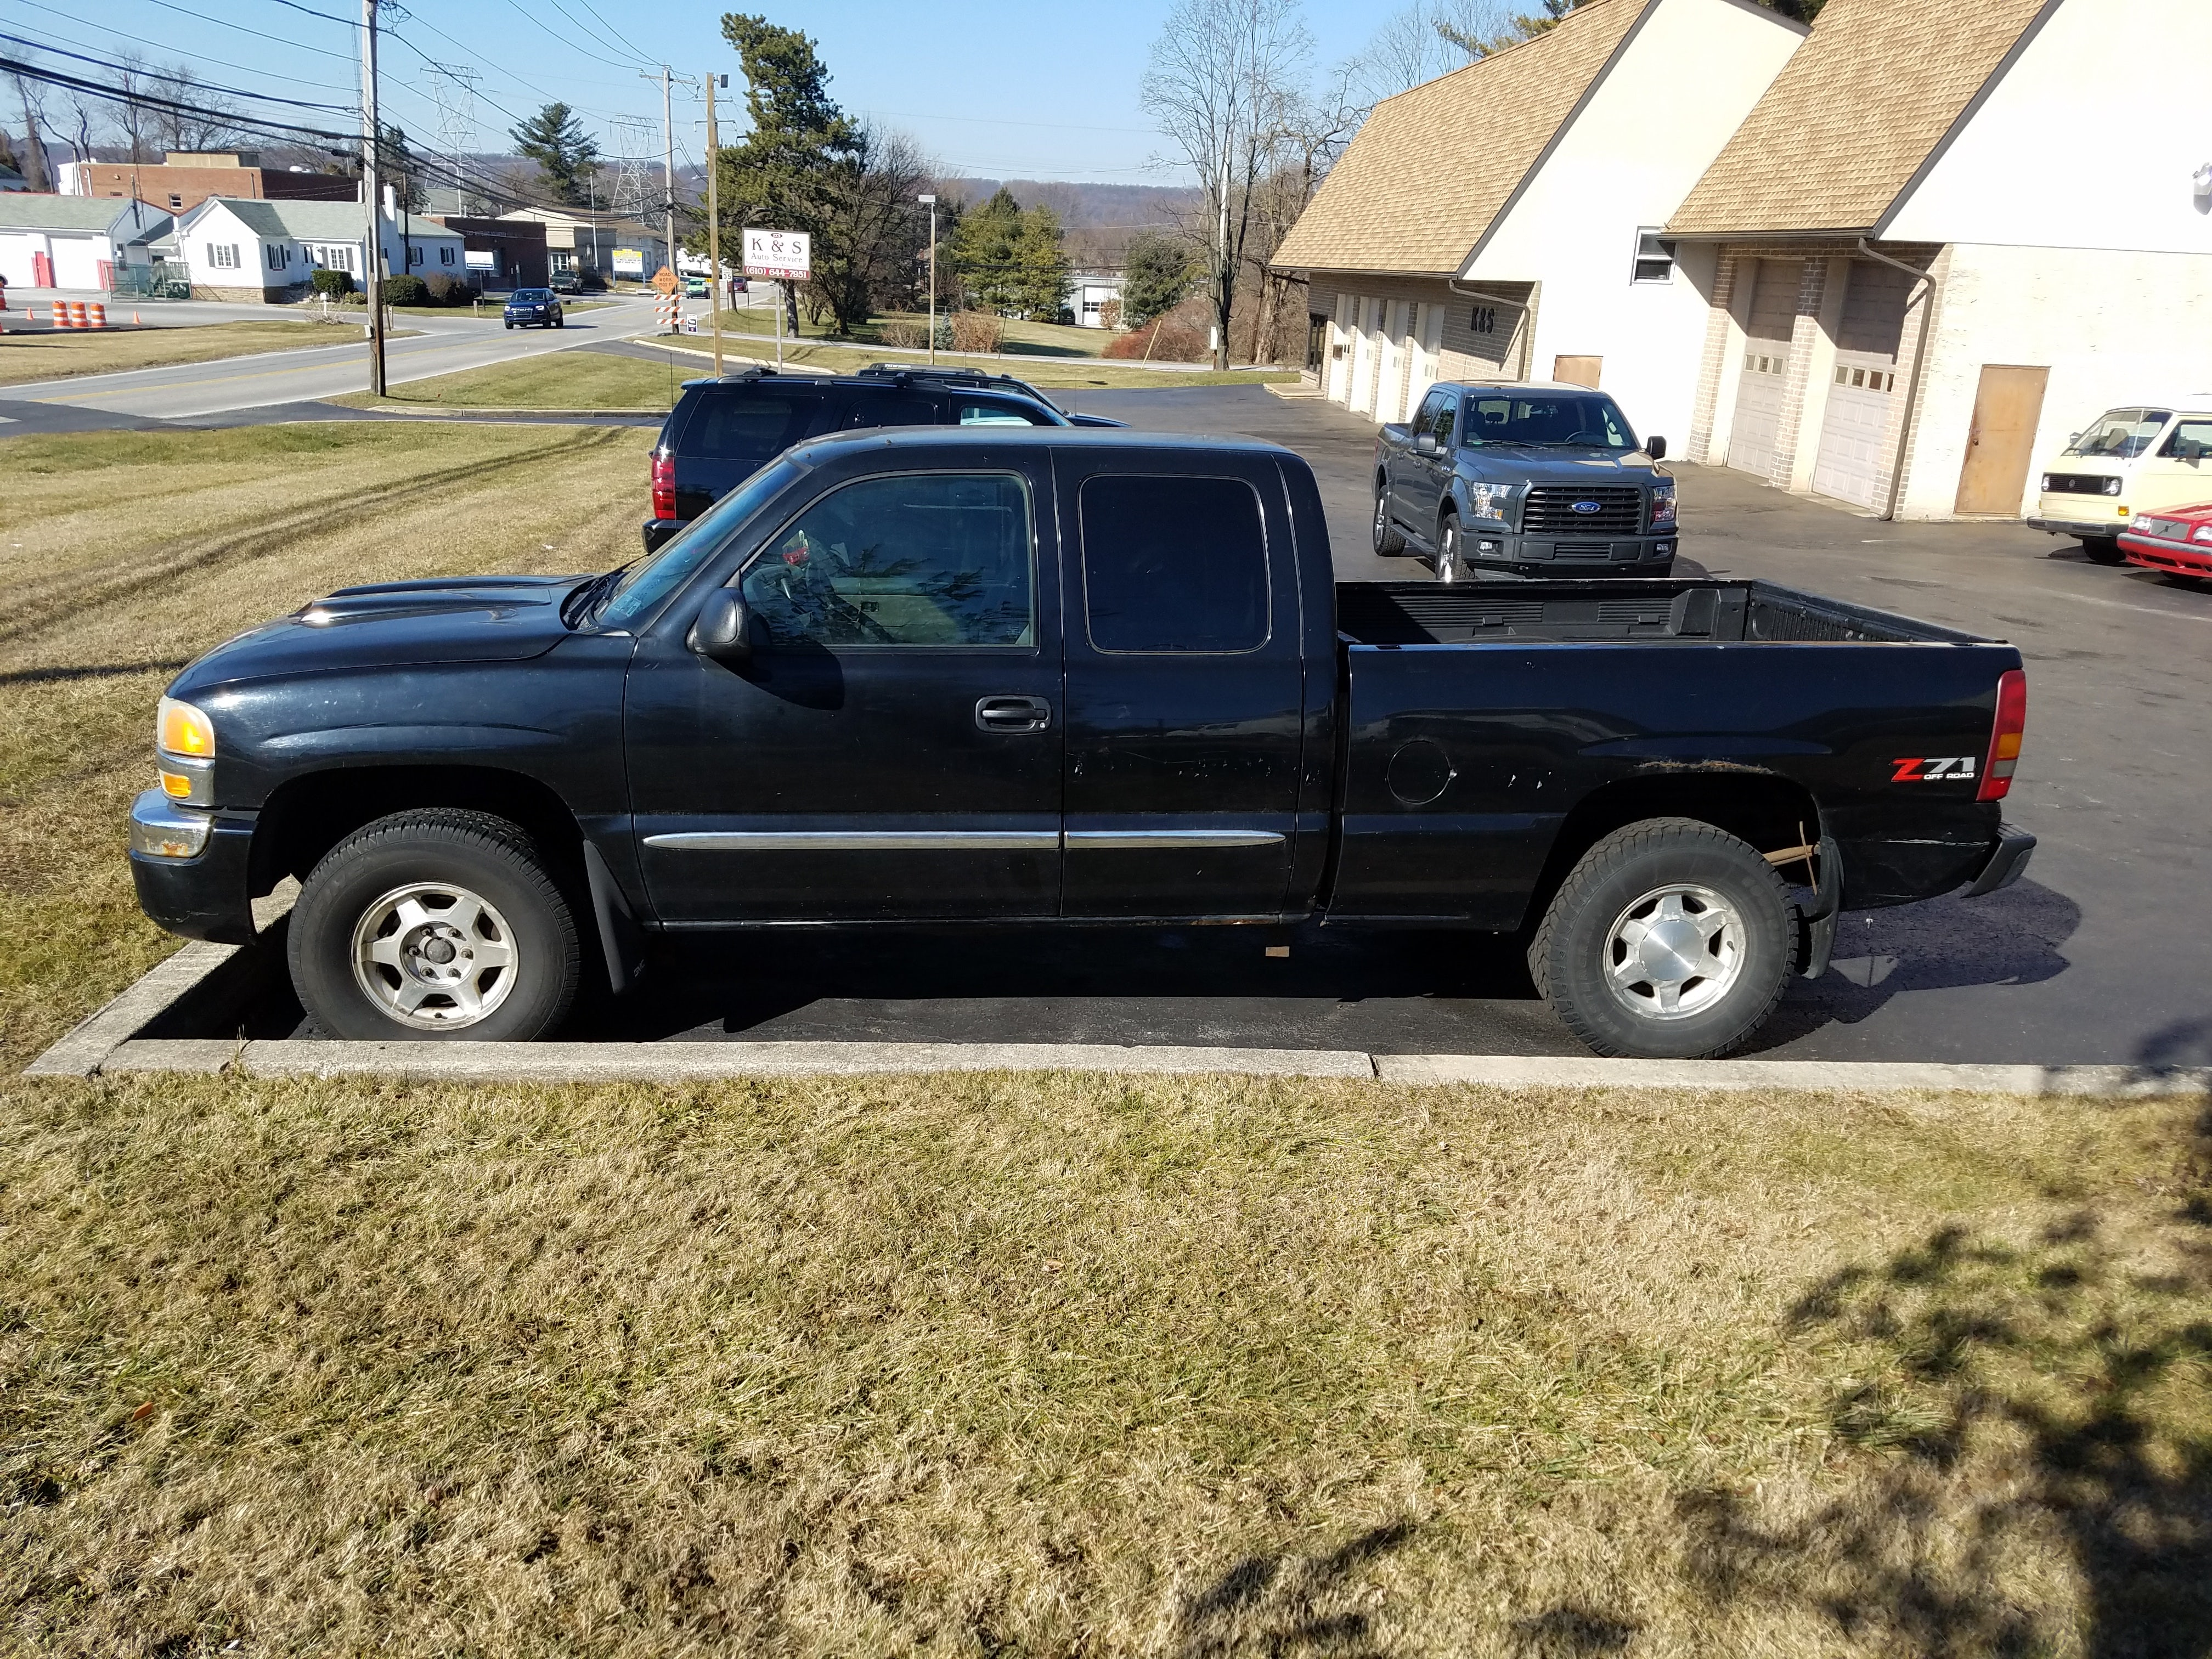 Junk 2003 GMC New Sierra In Malvern, PA | @Junk my Car